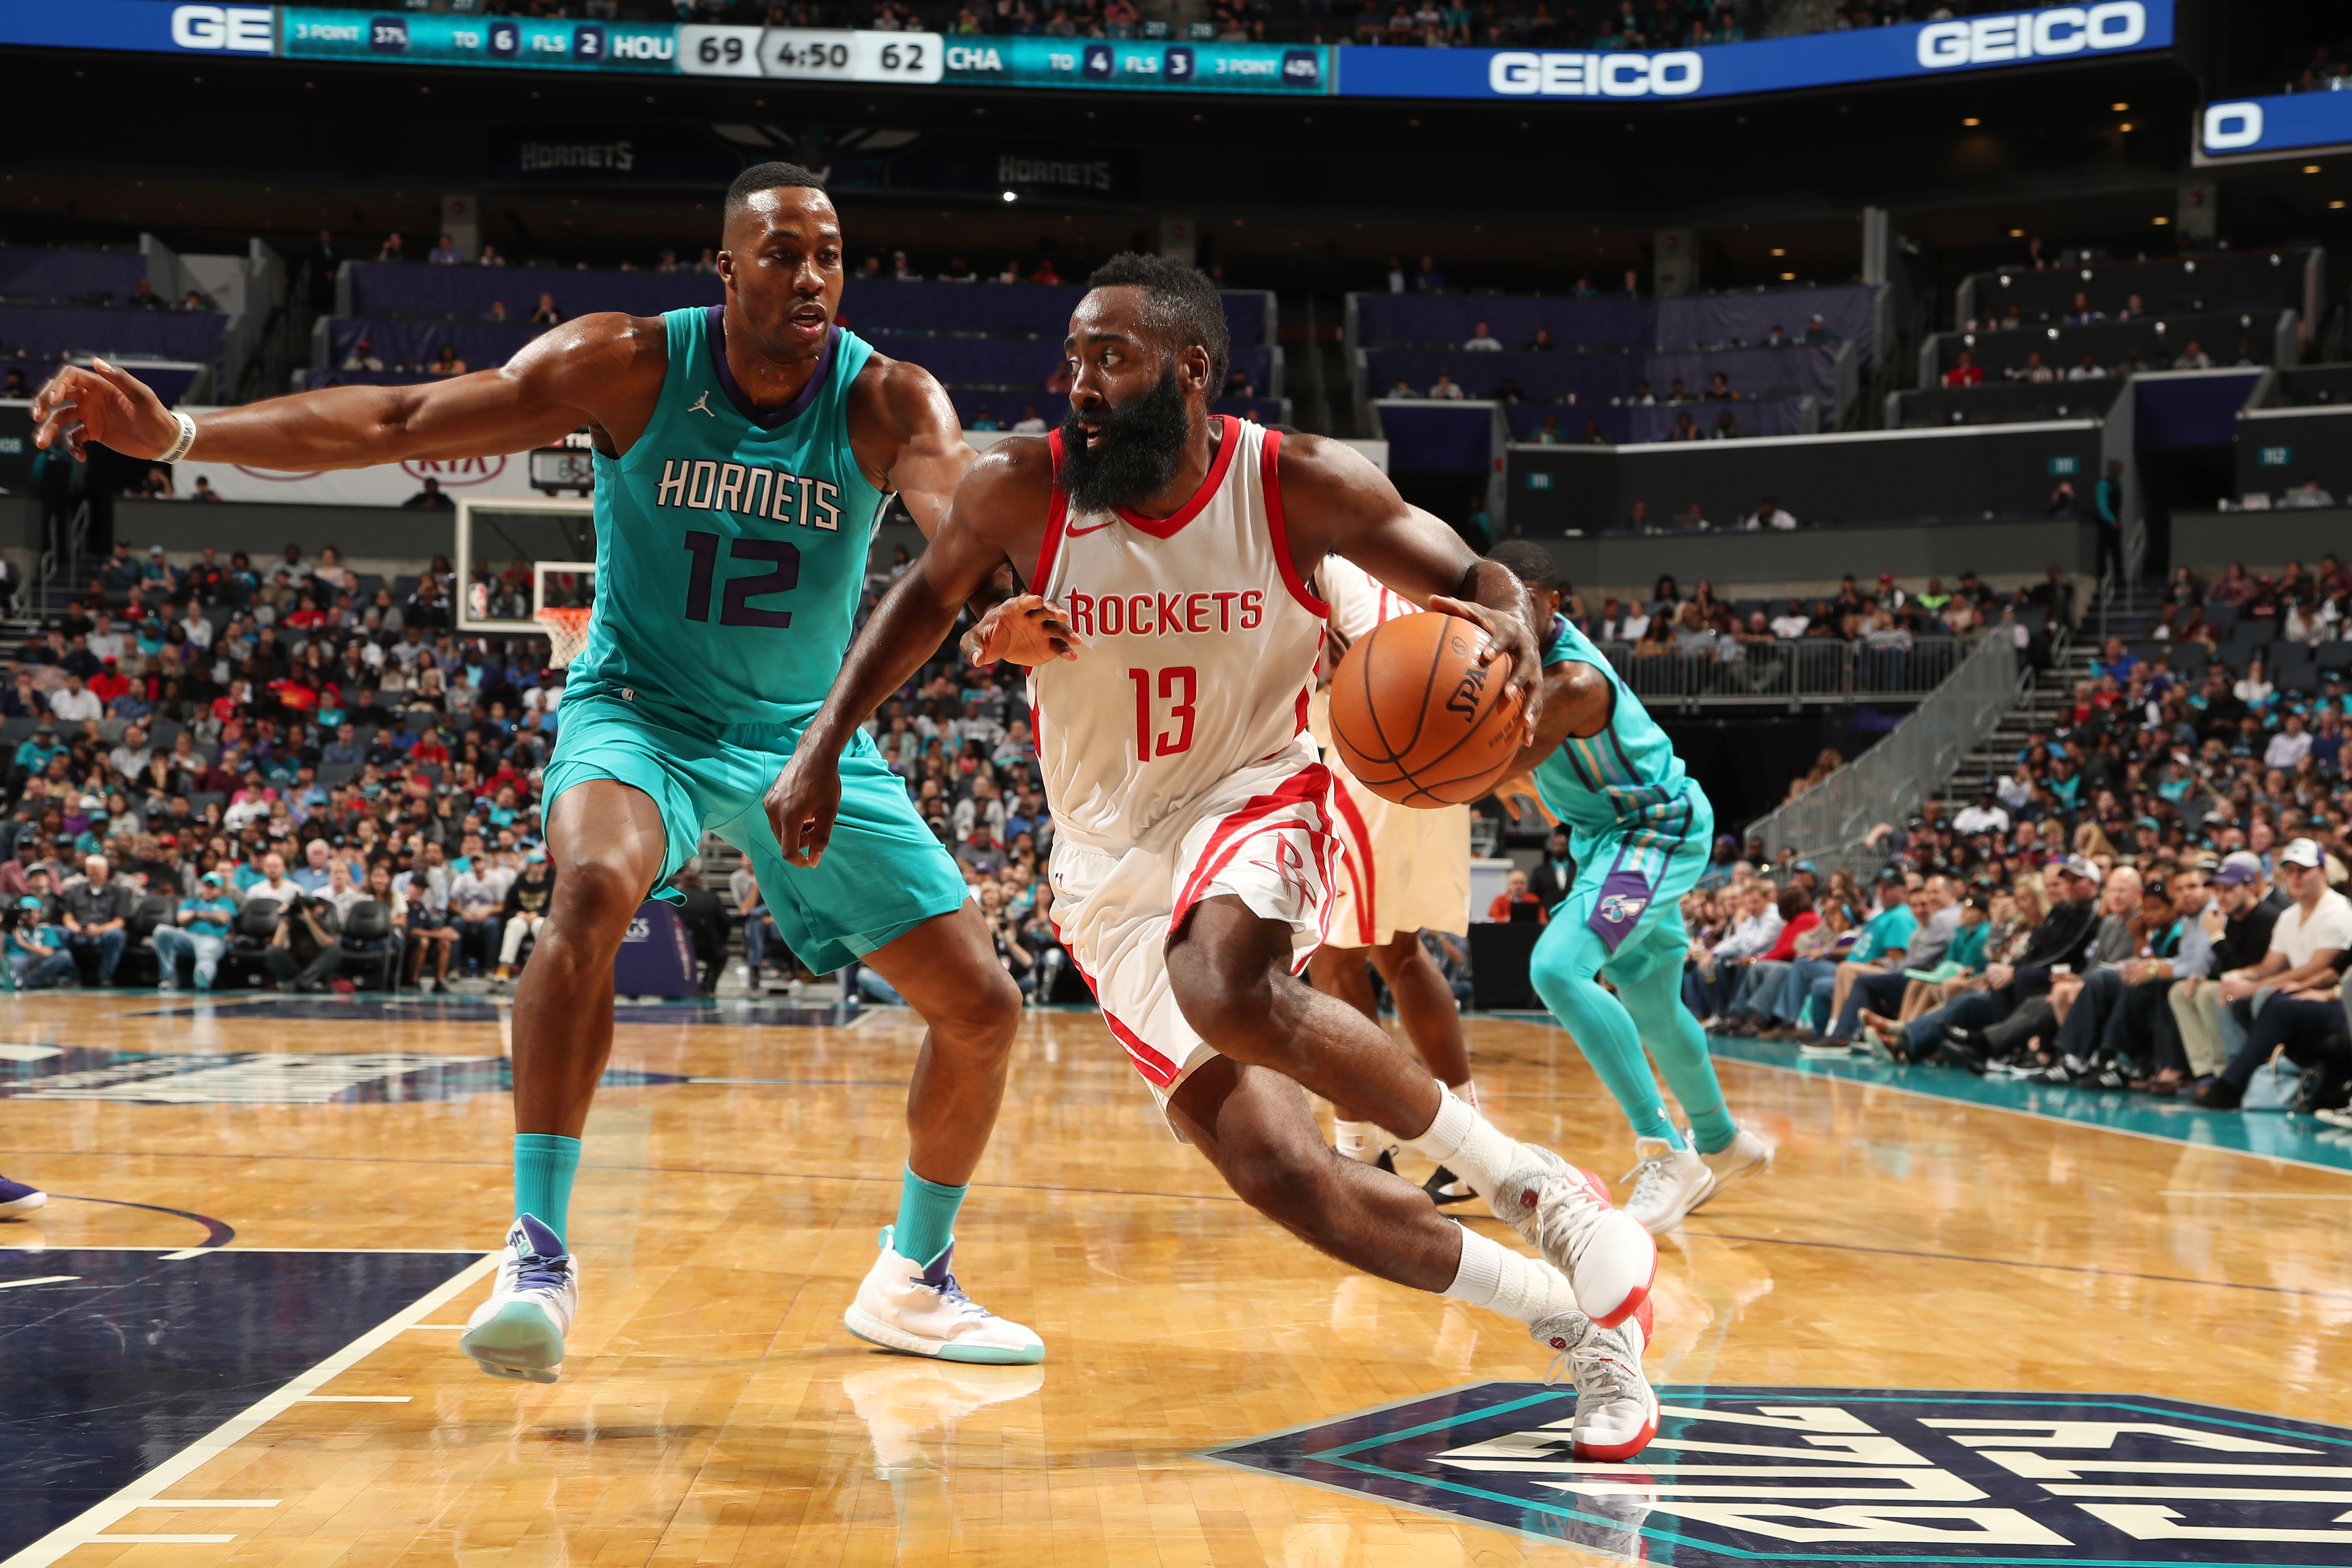 Walker powers Hornets past Magic